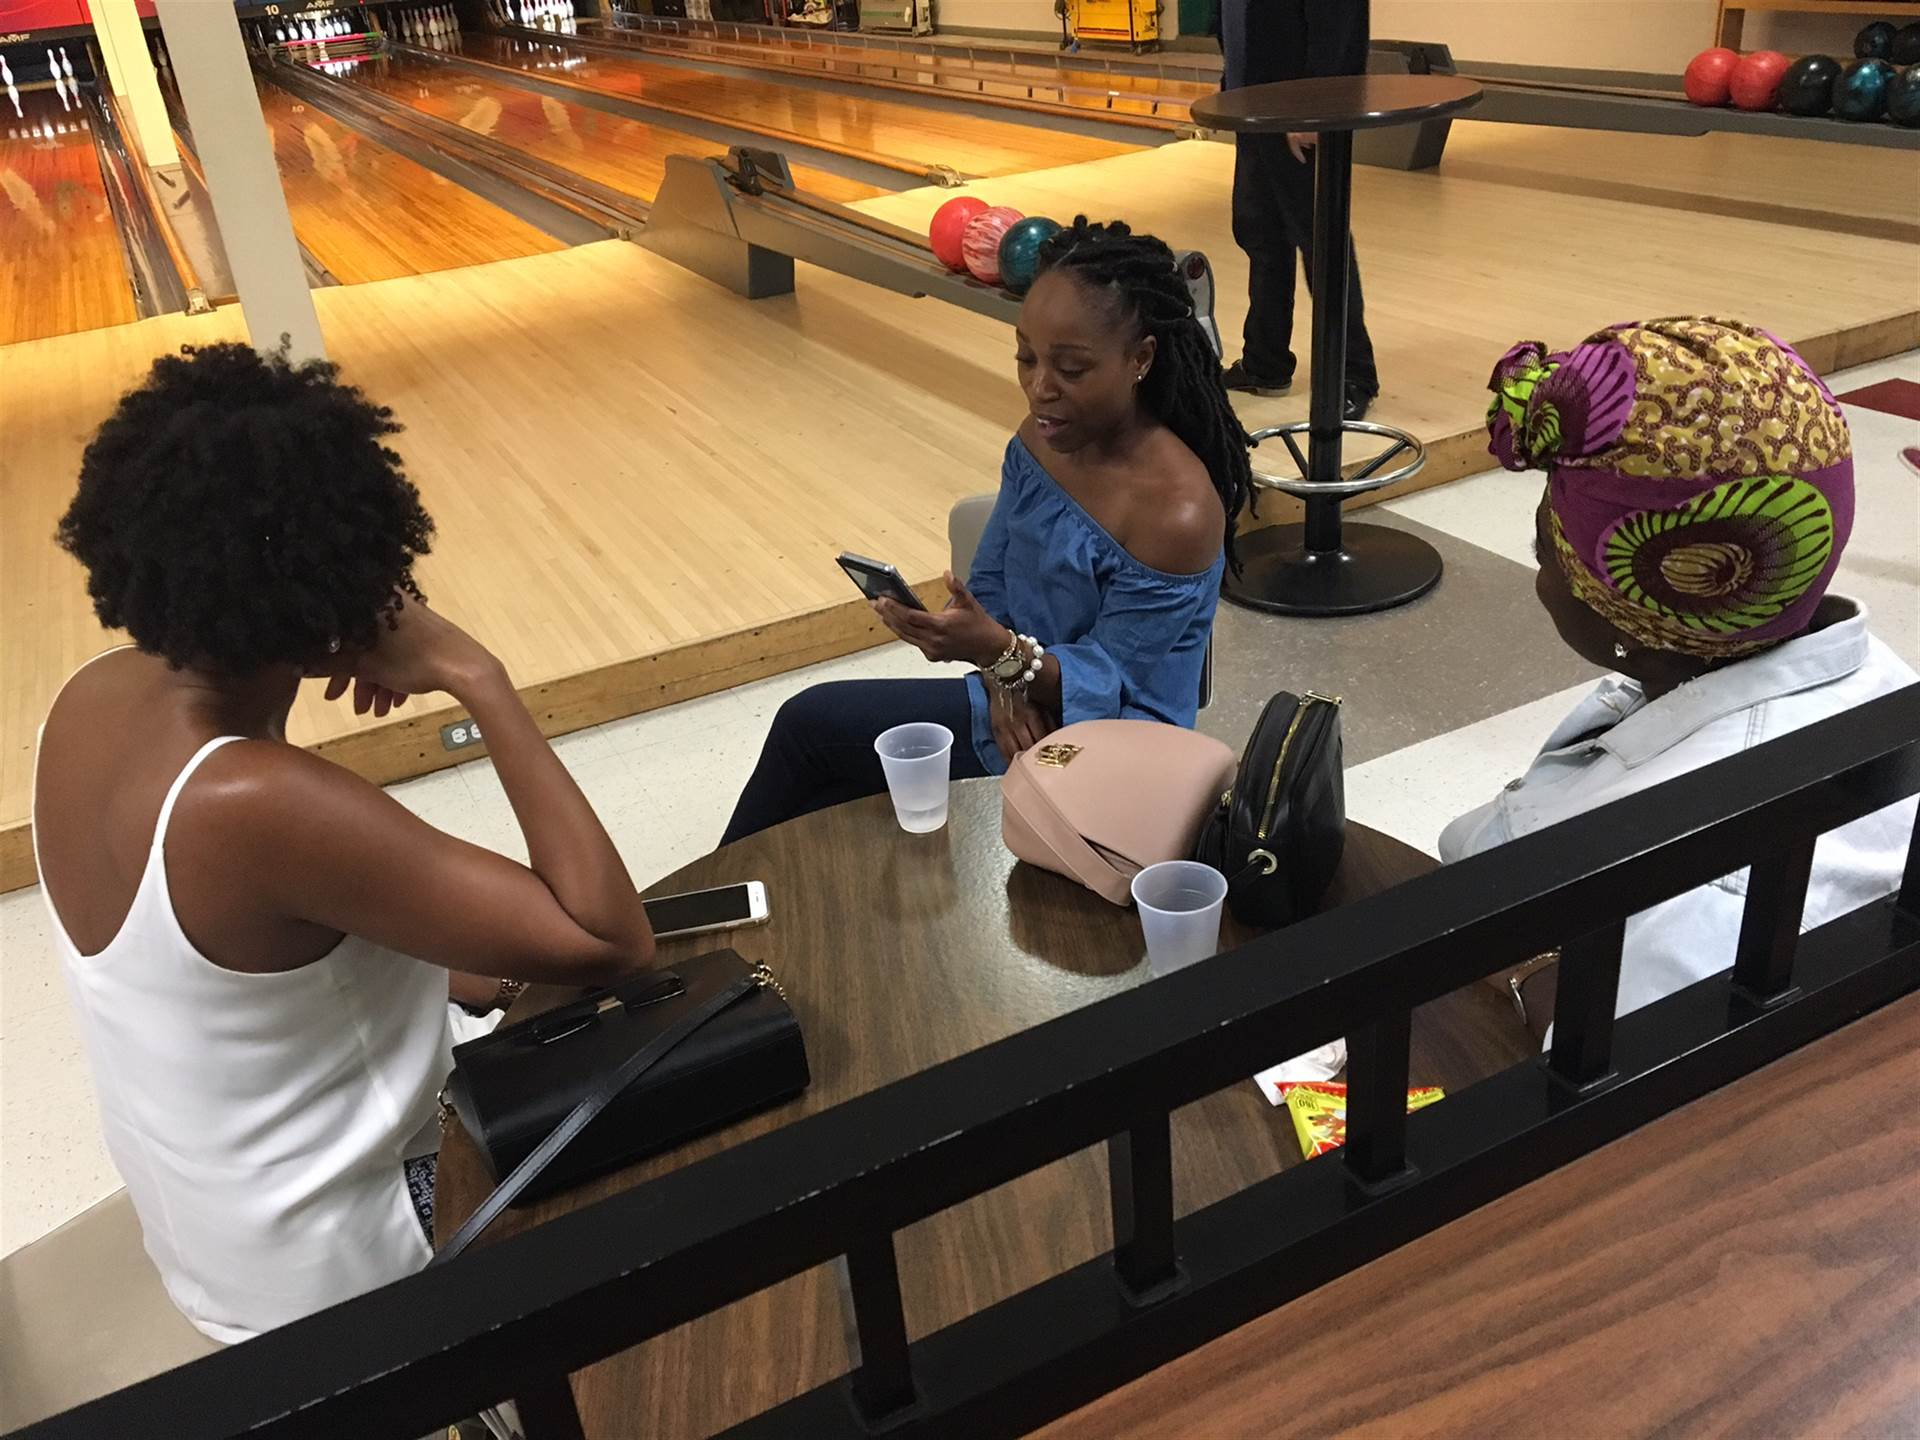 Chatting and bowling